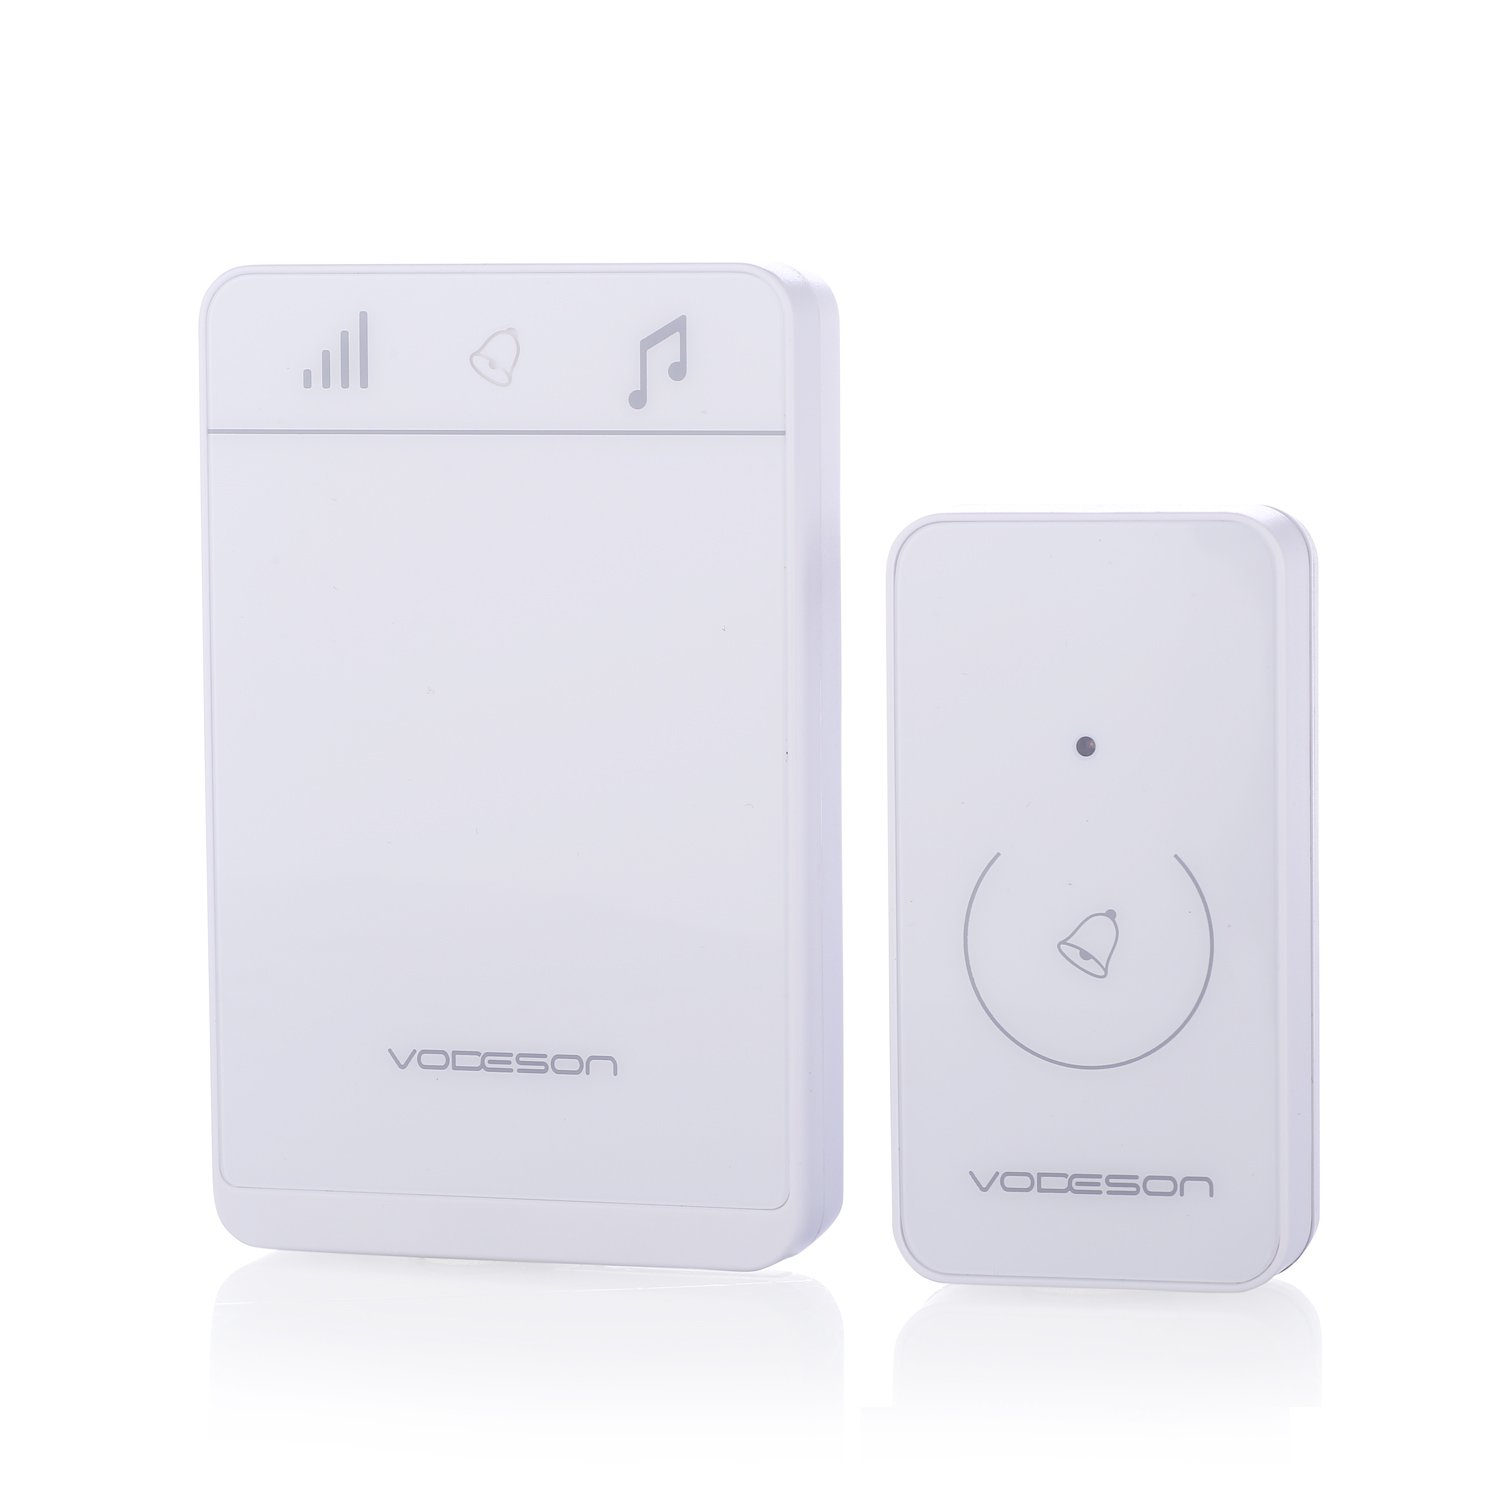 VODESON Wireless Doorbell Battery Chime Electronic Remote Control Waterproof Touch Button Portable Door Bell System 1 Touch Sensor Push Button and 1 Door Chime Use for Home, Apartments, Office-White